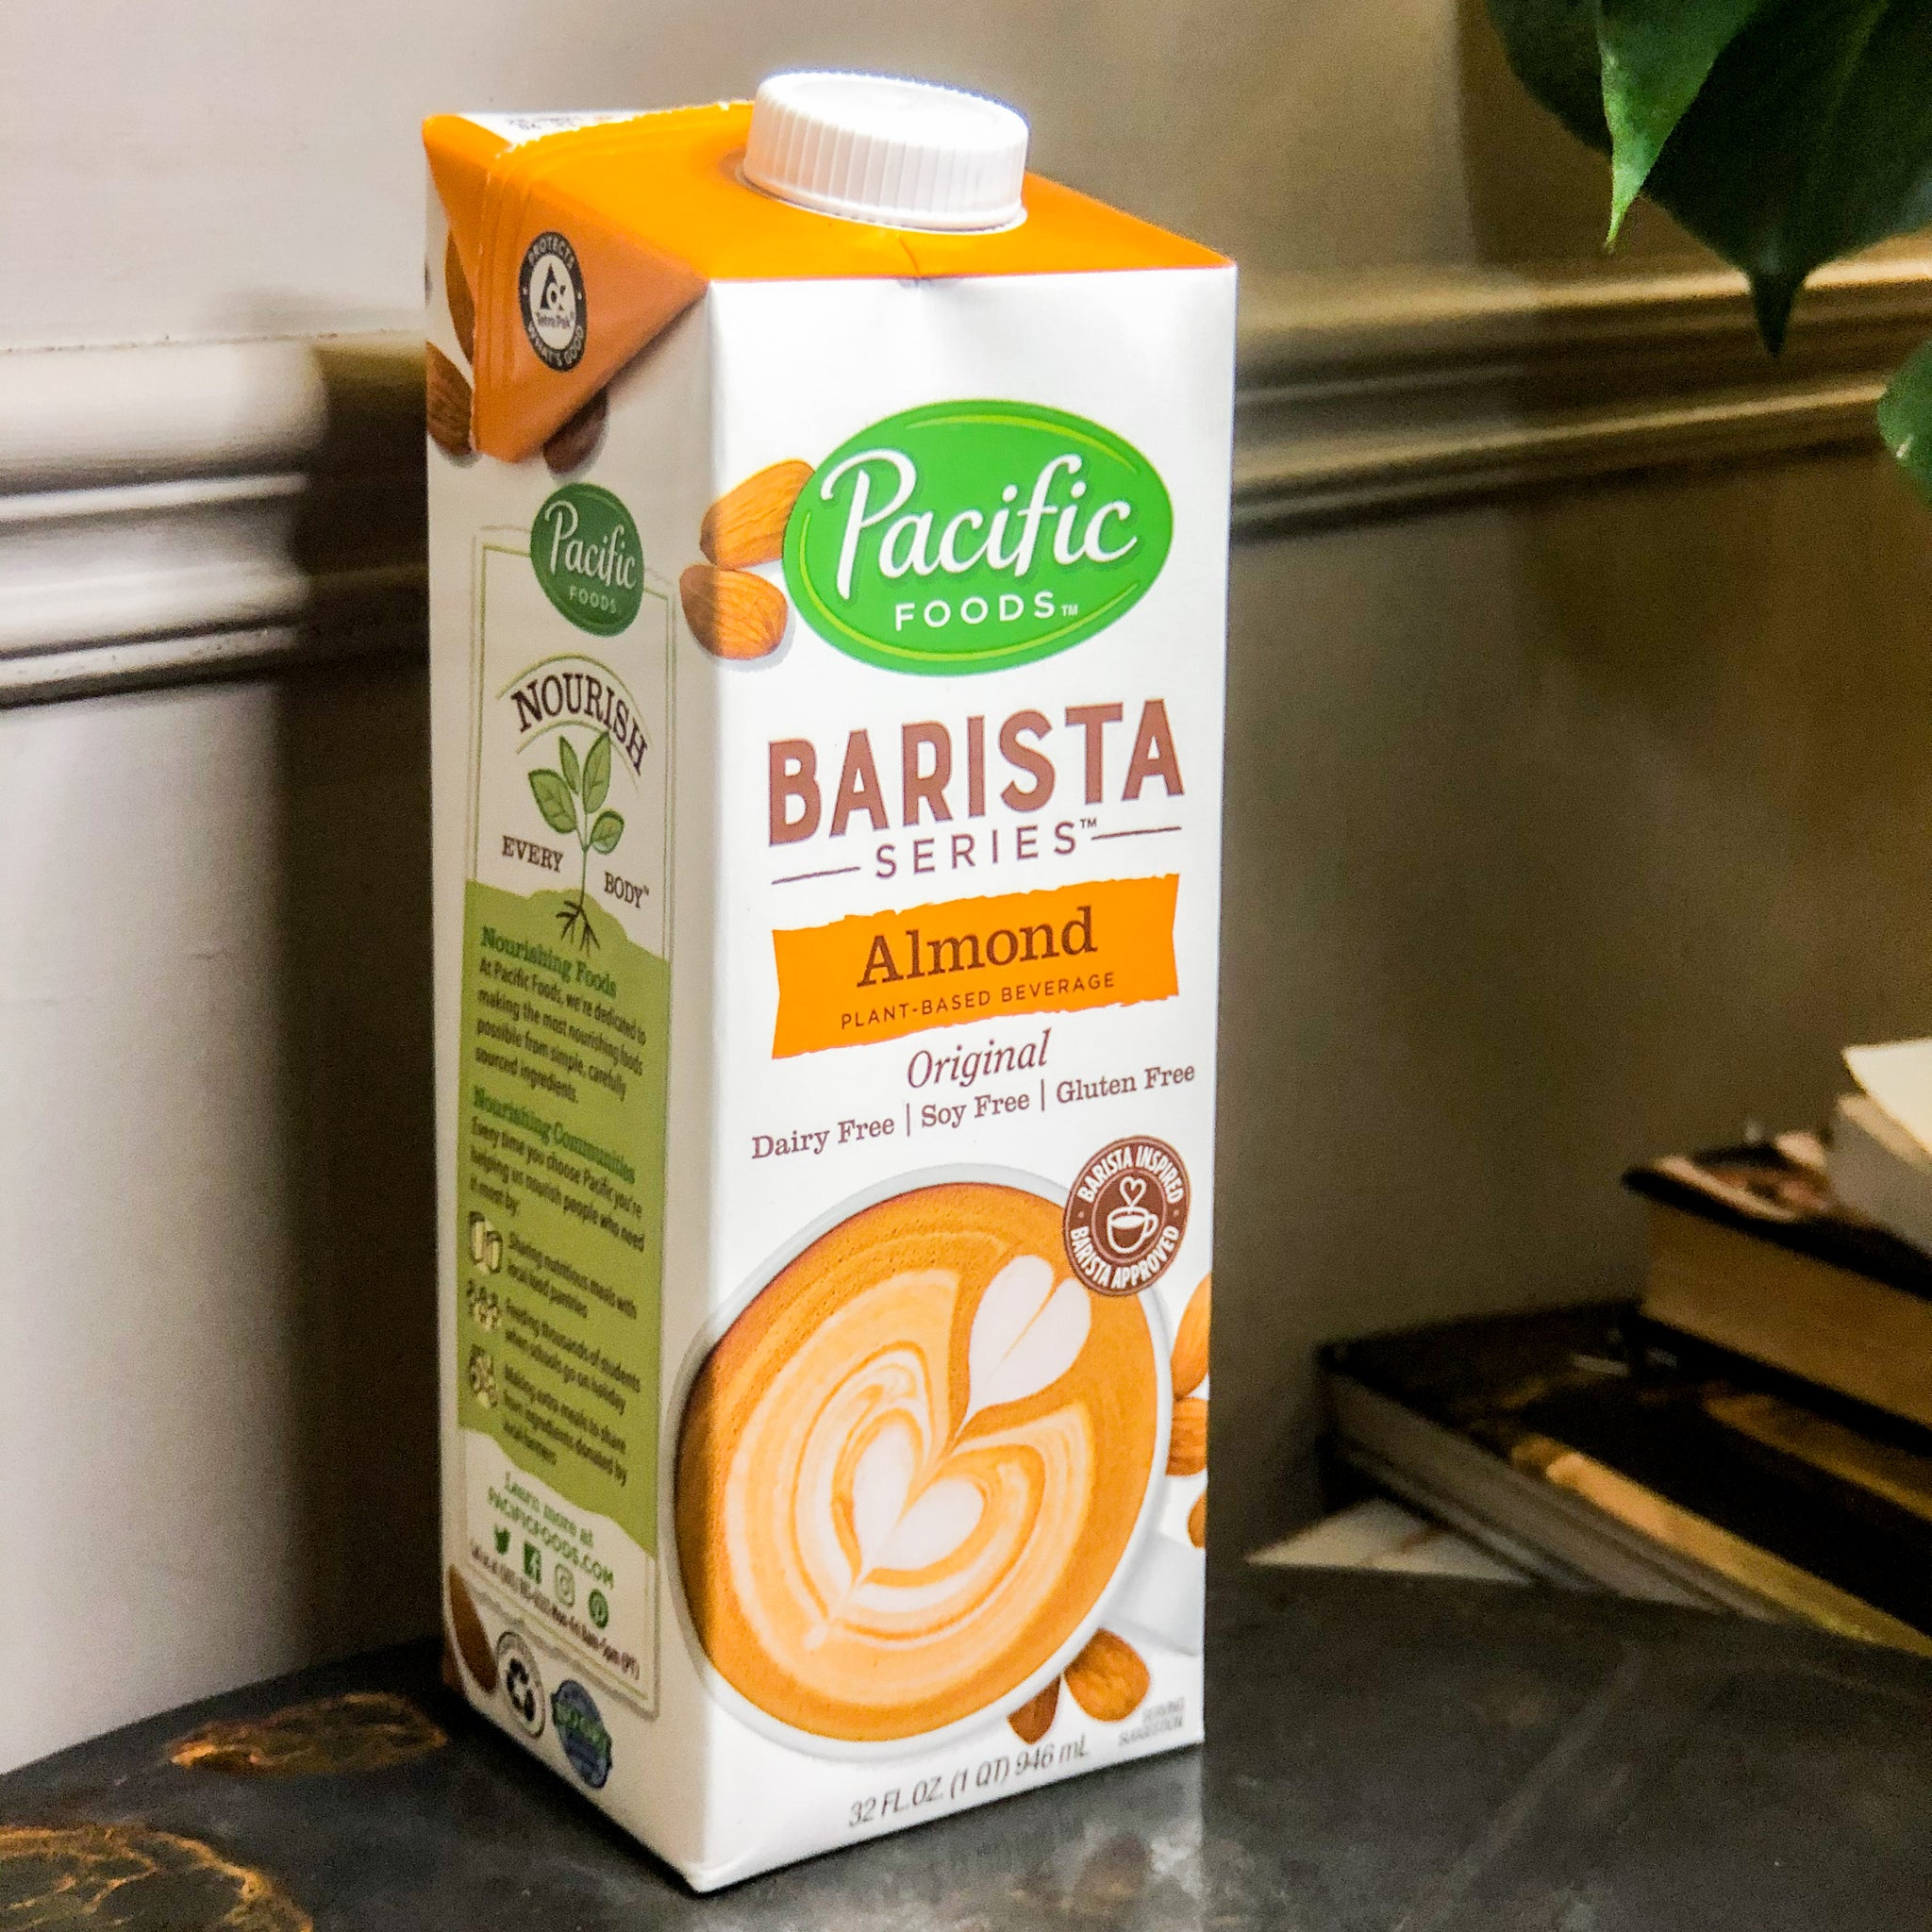 Pacific Foods (Barista Series) Almond Beverage - Original